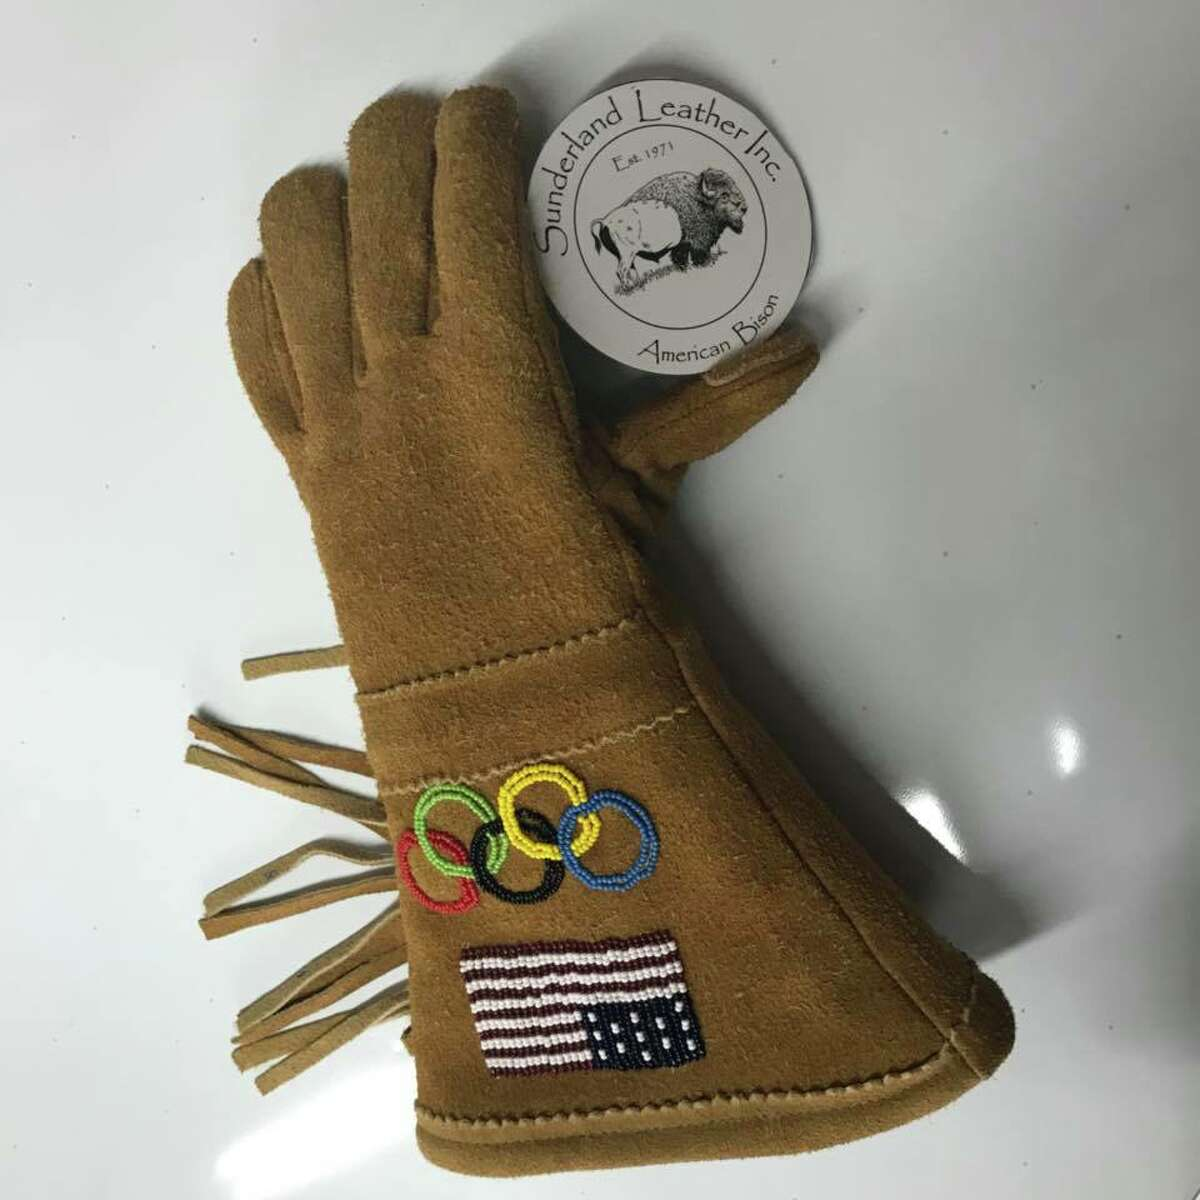 The fringed gloves worn by American athletes at the 2018 Winter Olympic Games in Pyeongchang were made with leather tanned and colored at Sunderland Leather Co., a family-owned leather business in Gloversville.